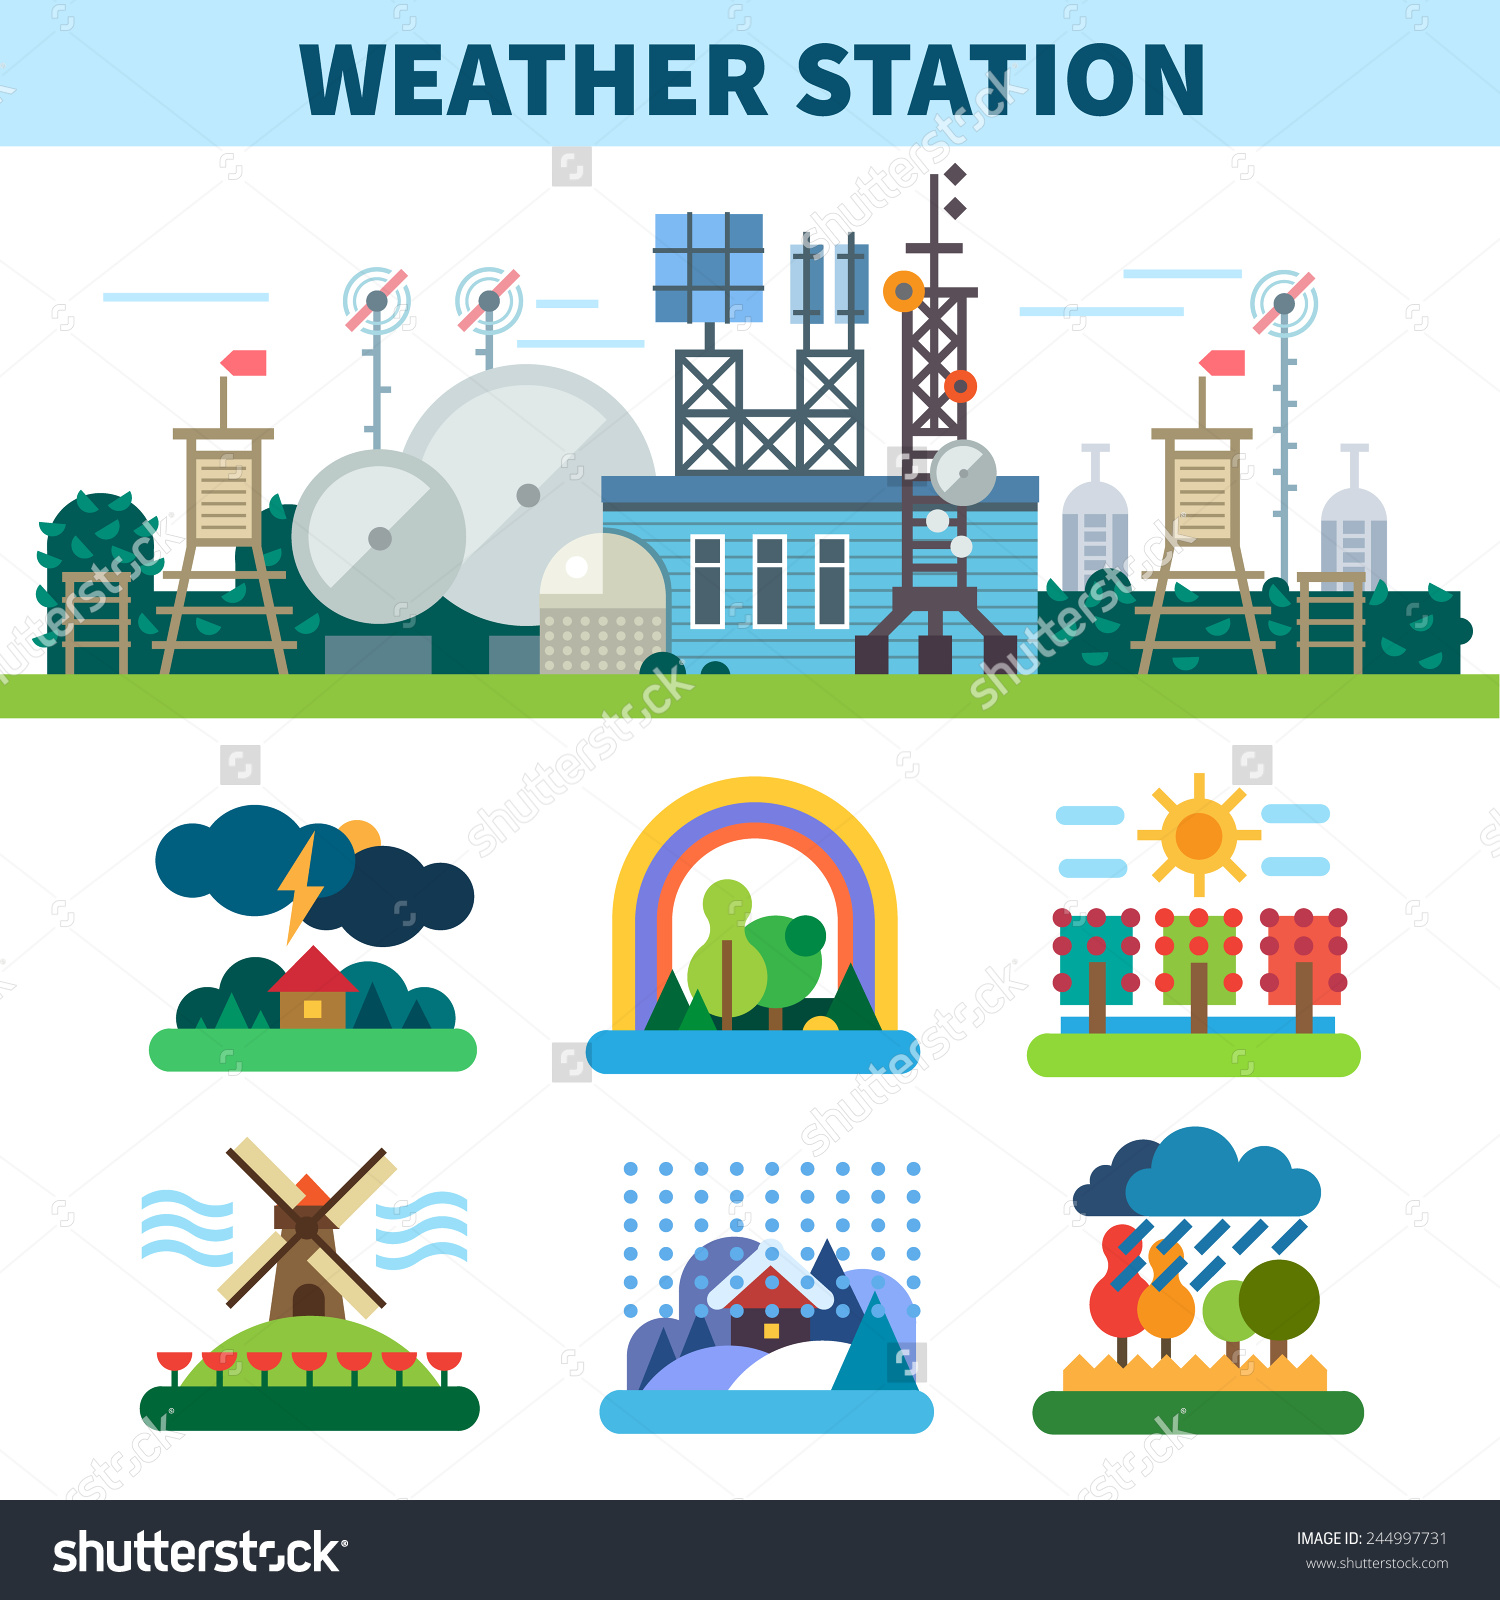 Weather Station Seasons Rain Wind Storm Stock Vector 244997731.